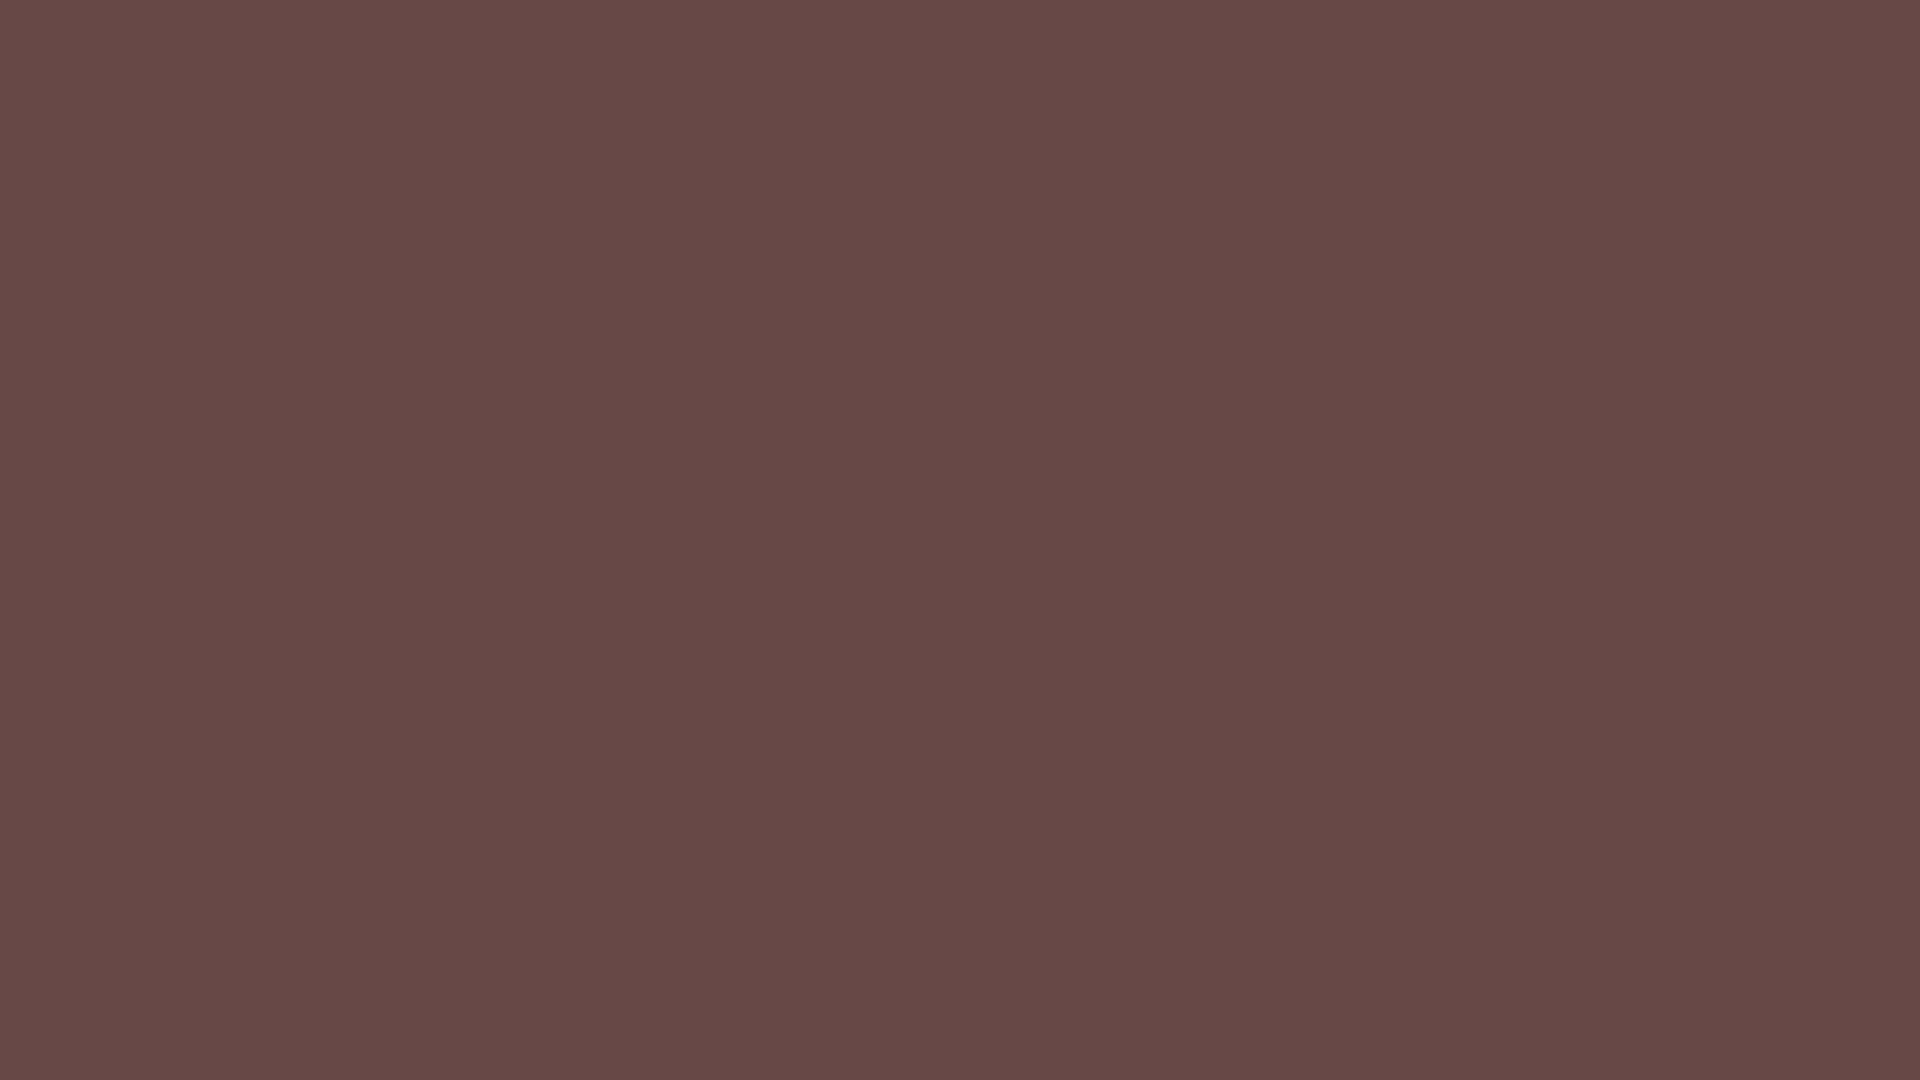 1920x1080 Rose Ebony Solid Color Background